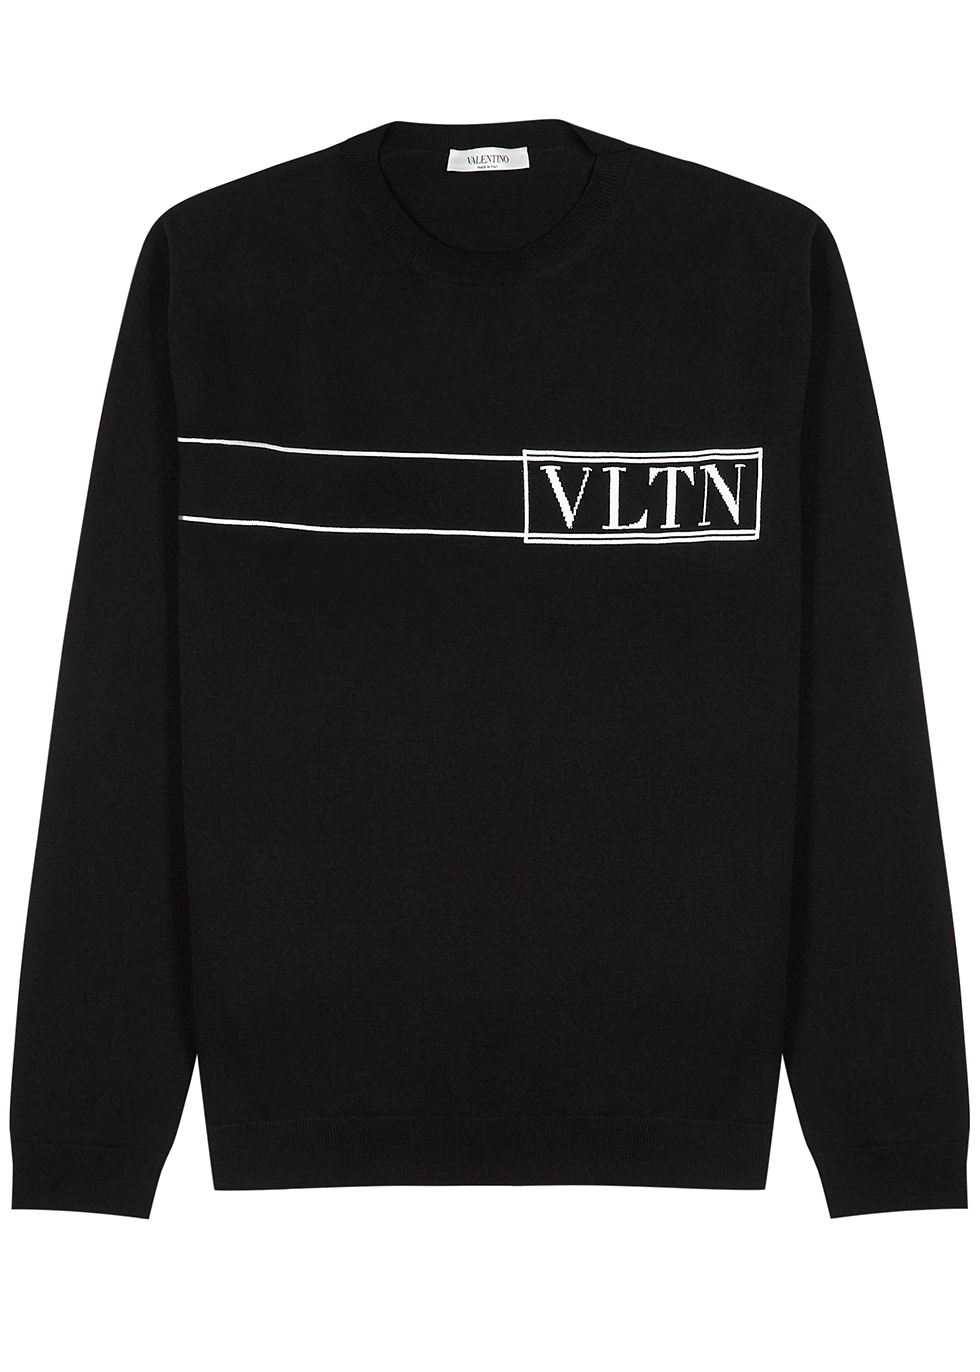 VLTN black stretch-knit jumper